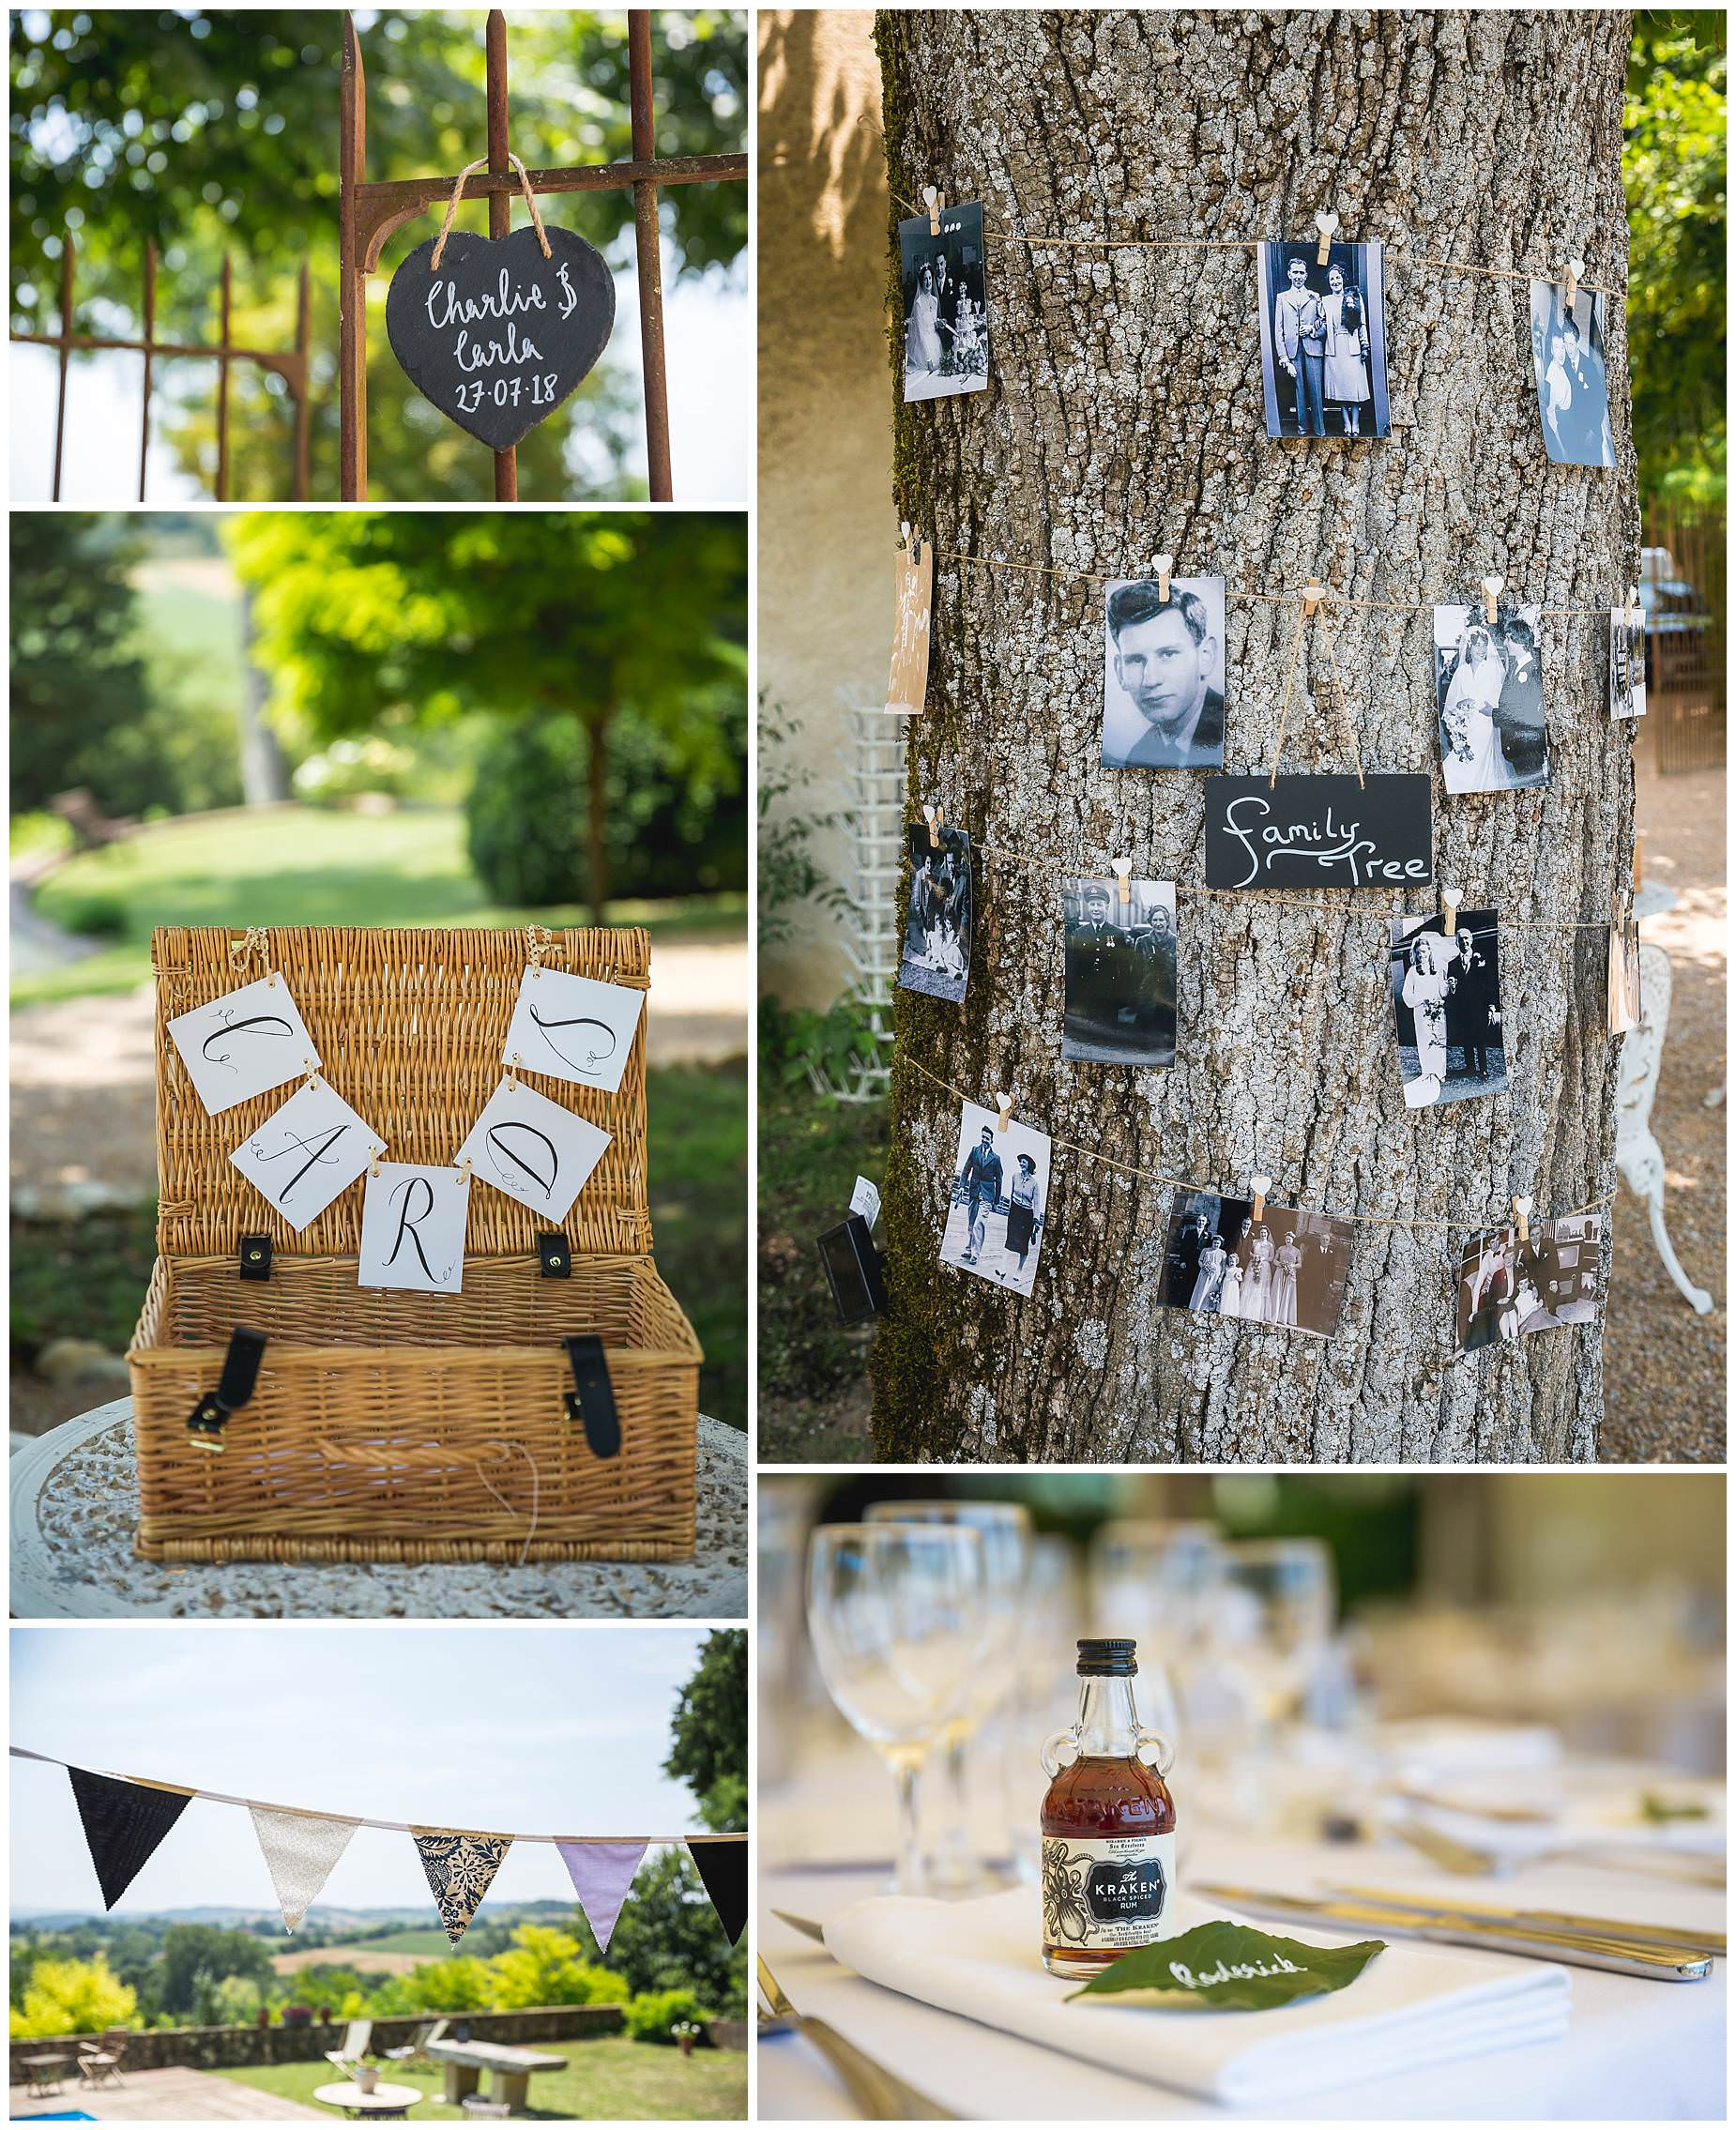 Family tree wedding